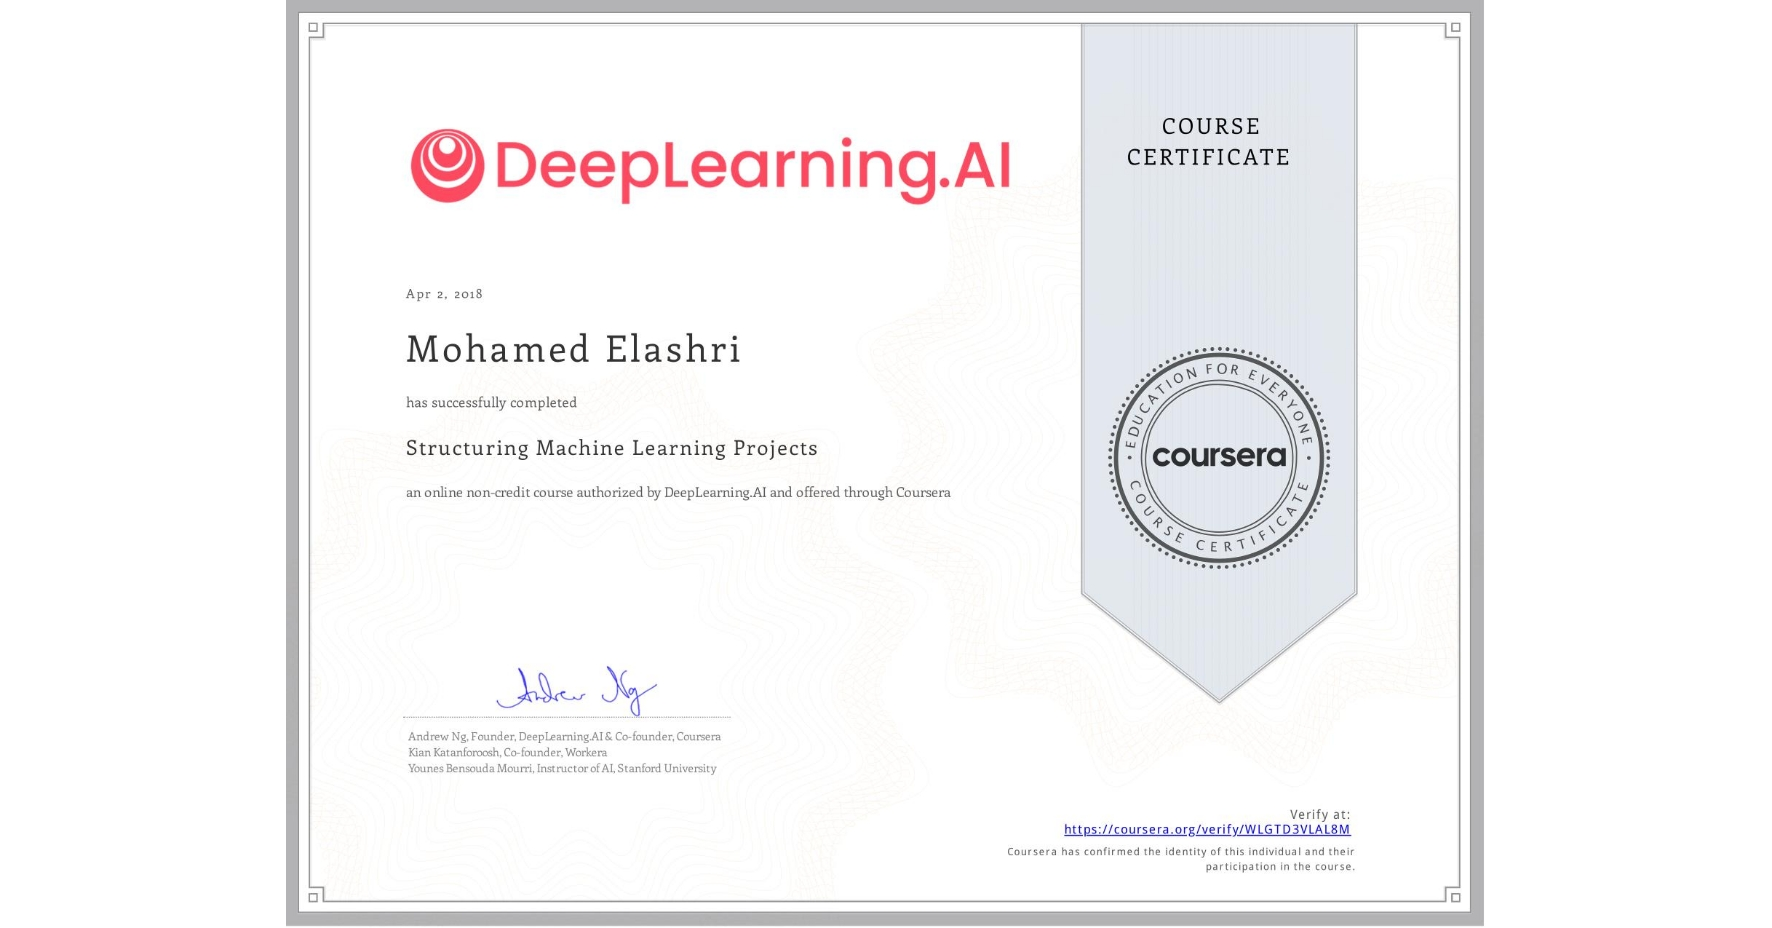 View certificate for Mohamed Elashri, Structuring Machine Learning Projects, an online non-credit course authorized by DeepLearning.AI and offered through Coursera